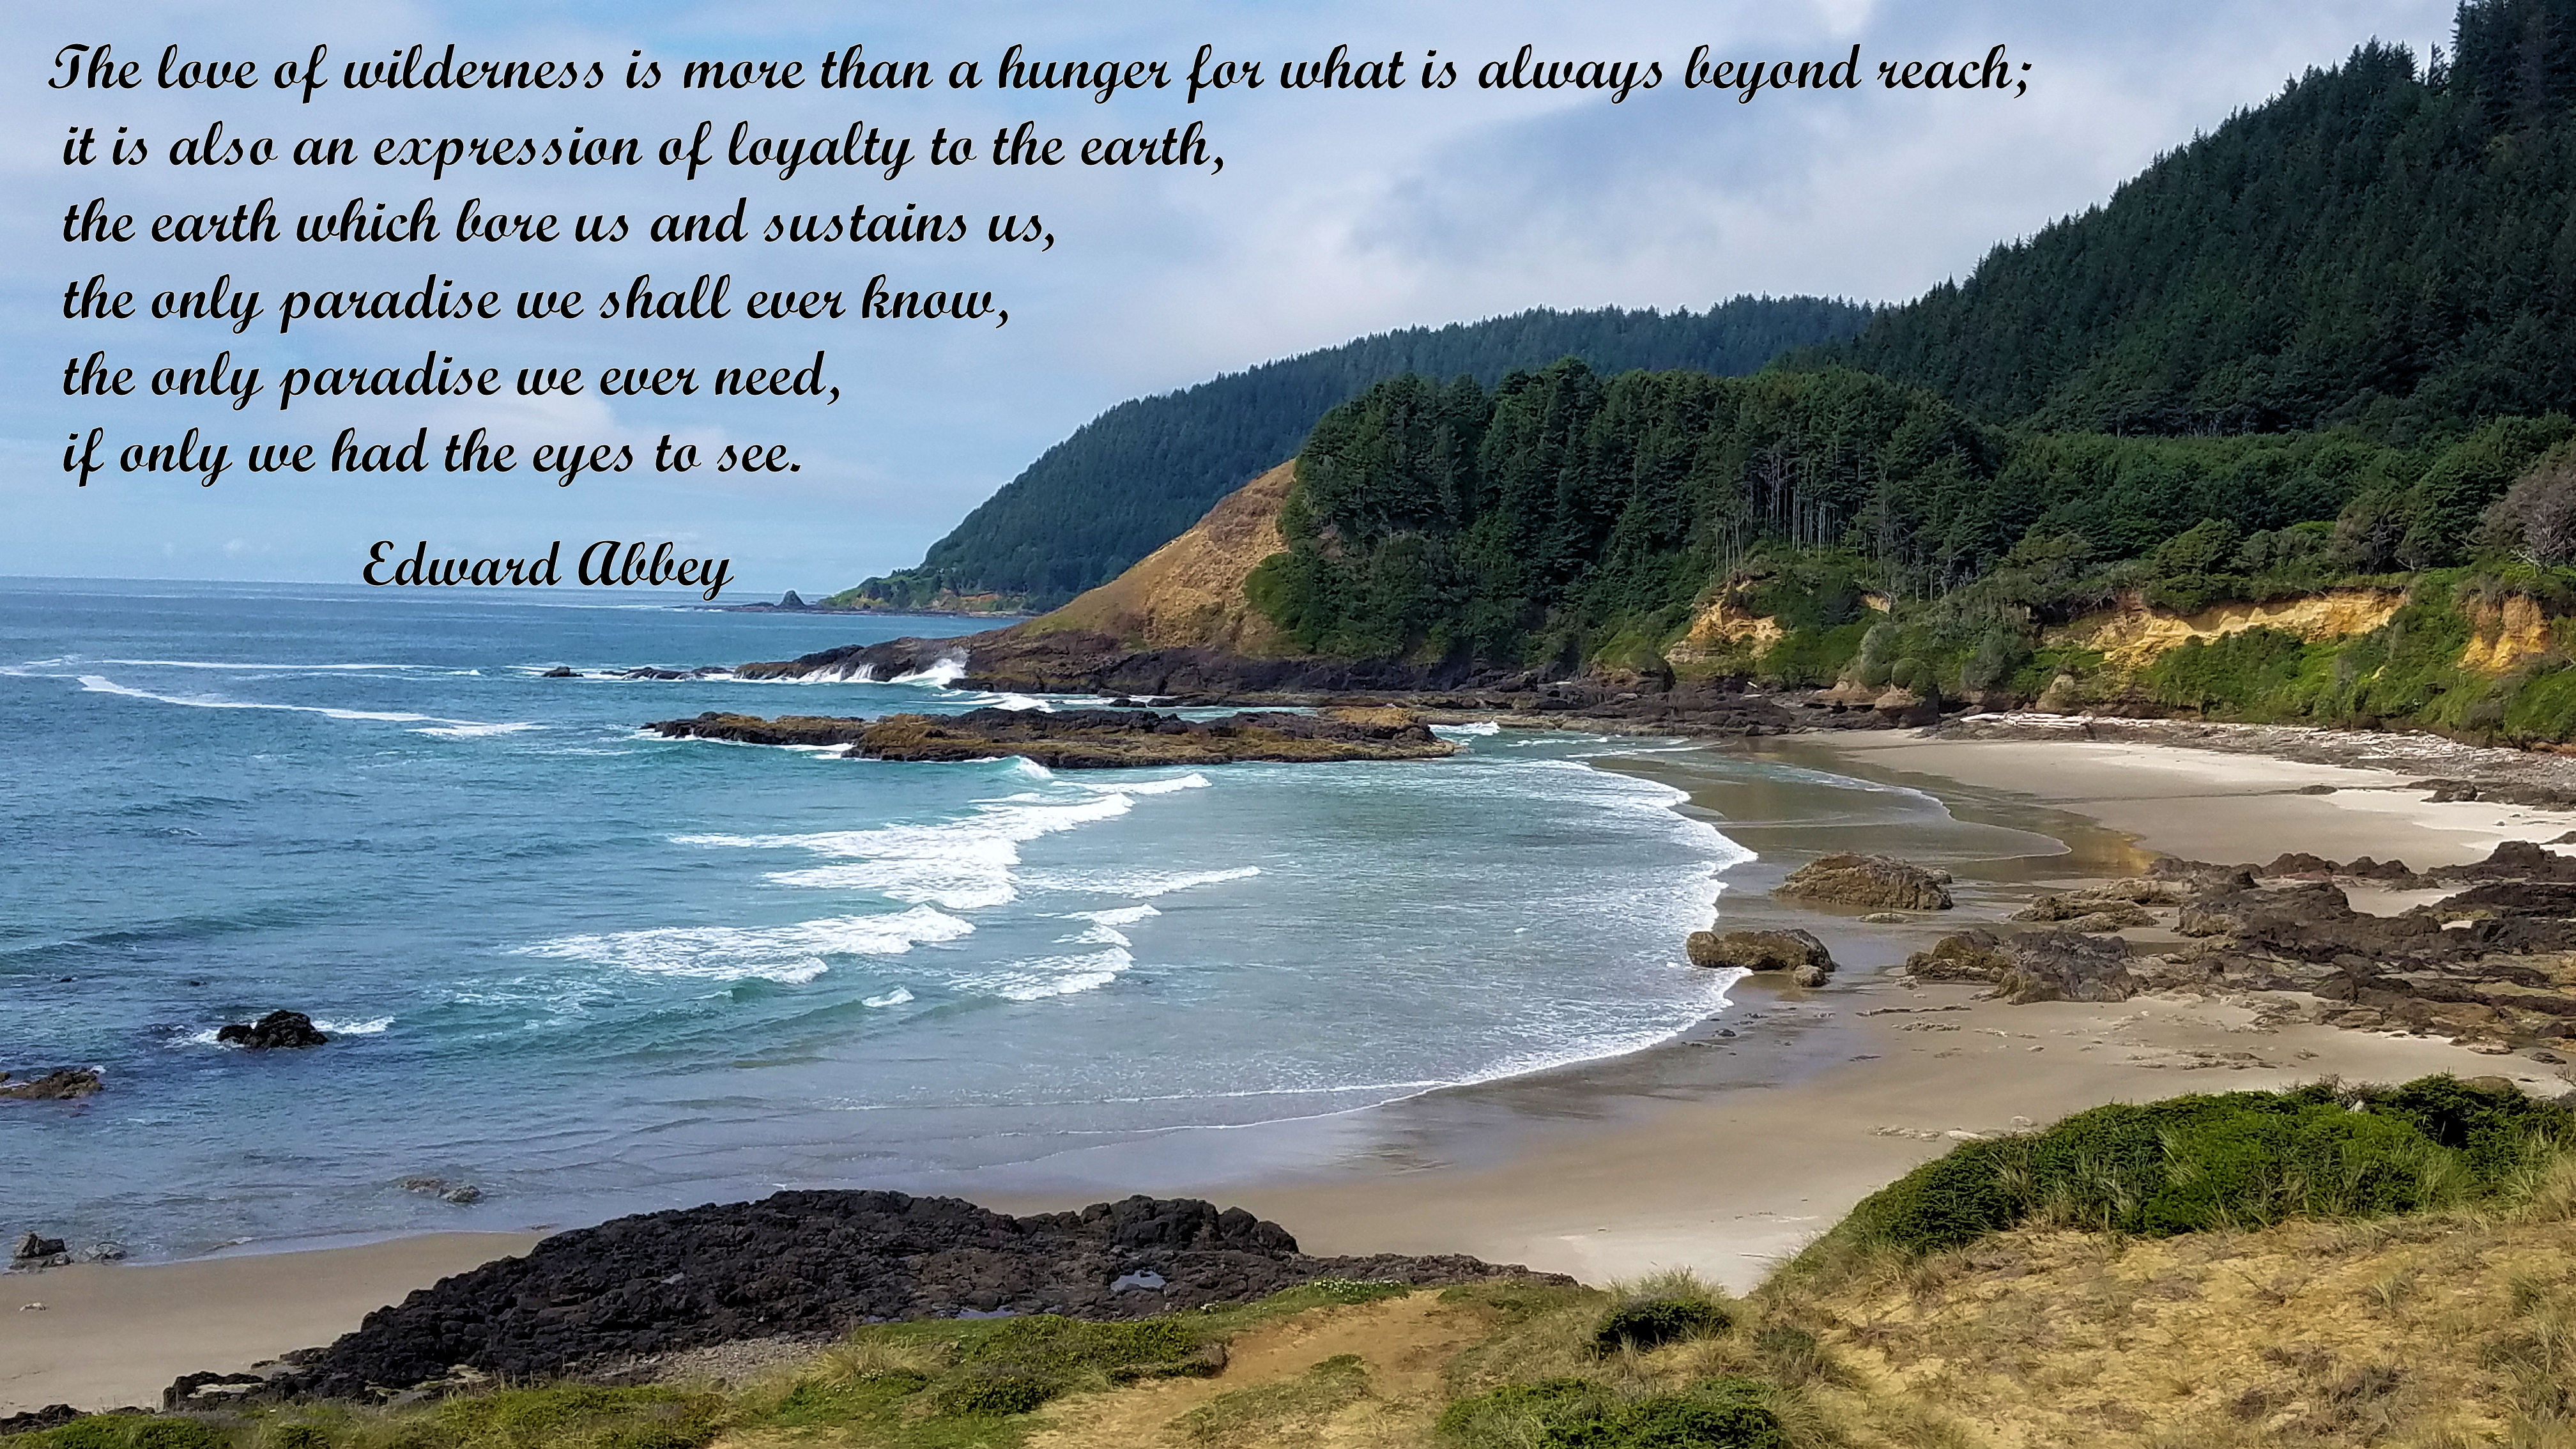 PC - HW 101 - Beaches - 17 + Edward Abby Quote